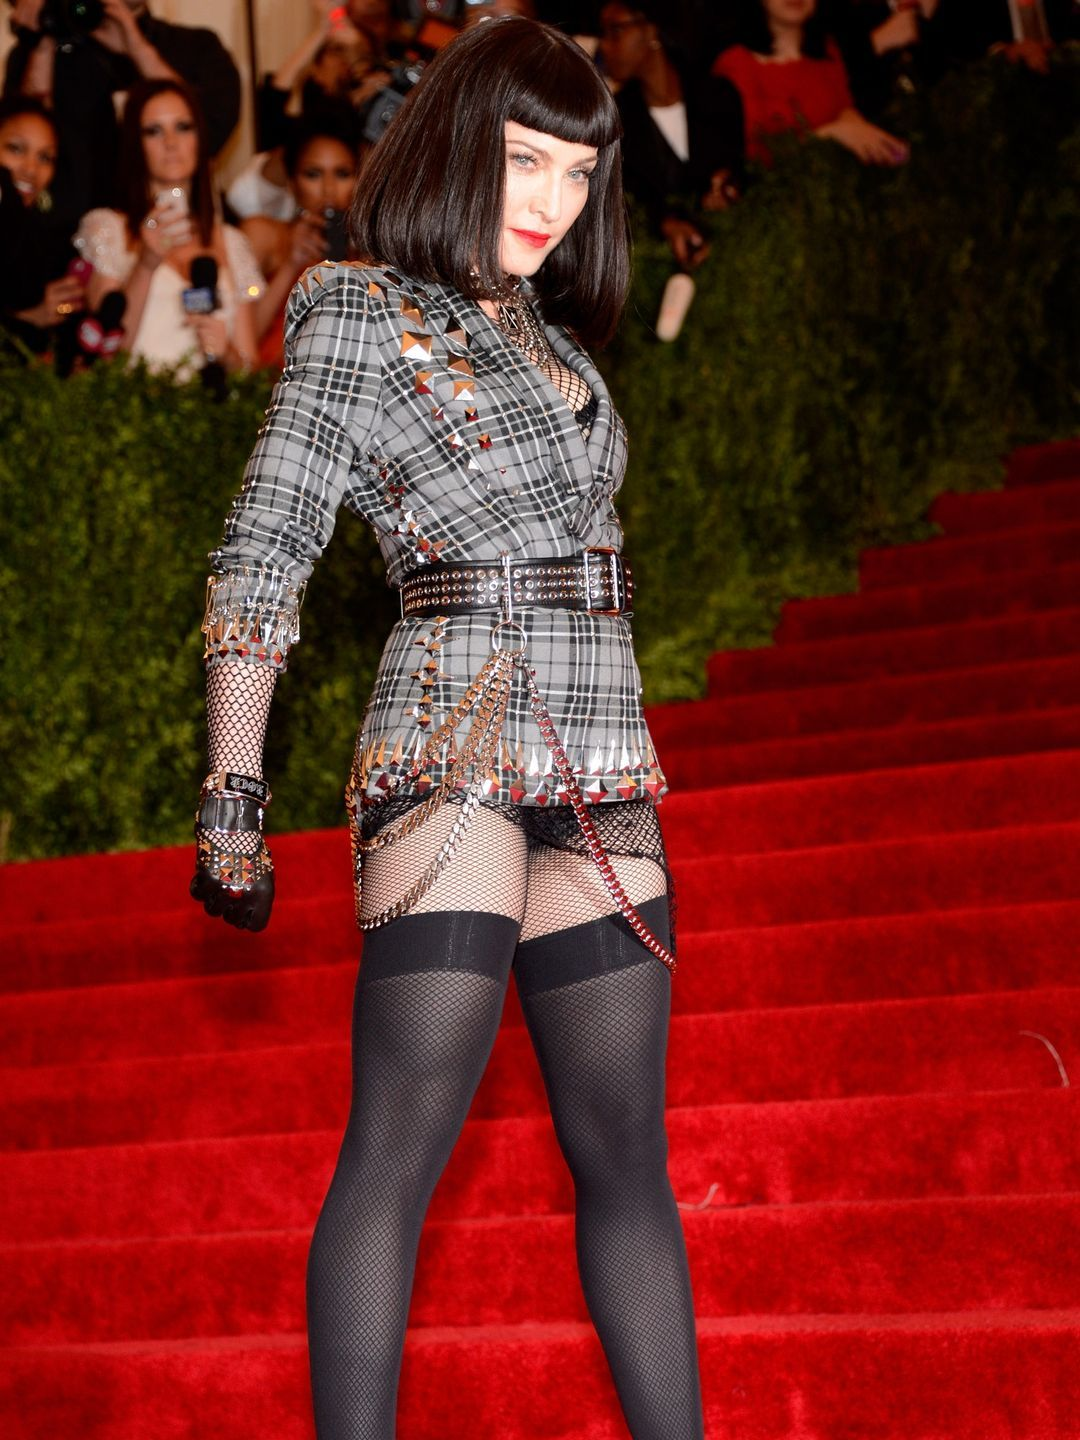 Never to be outdone, Madonna put on her punky best